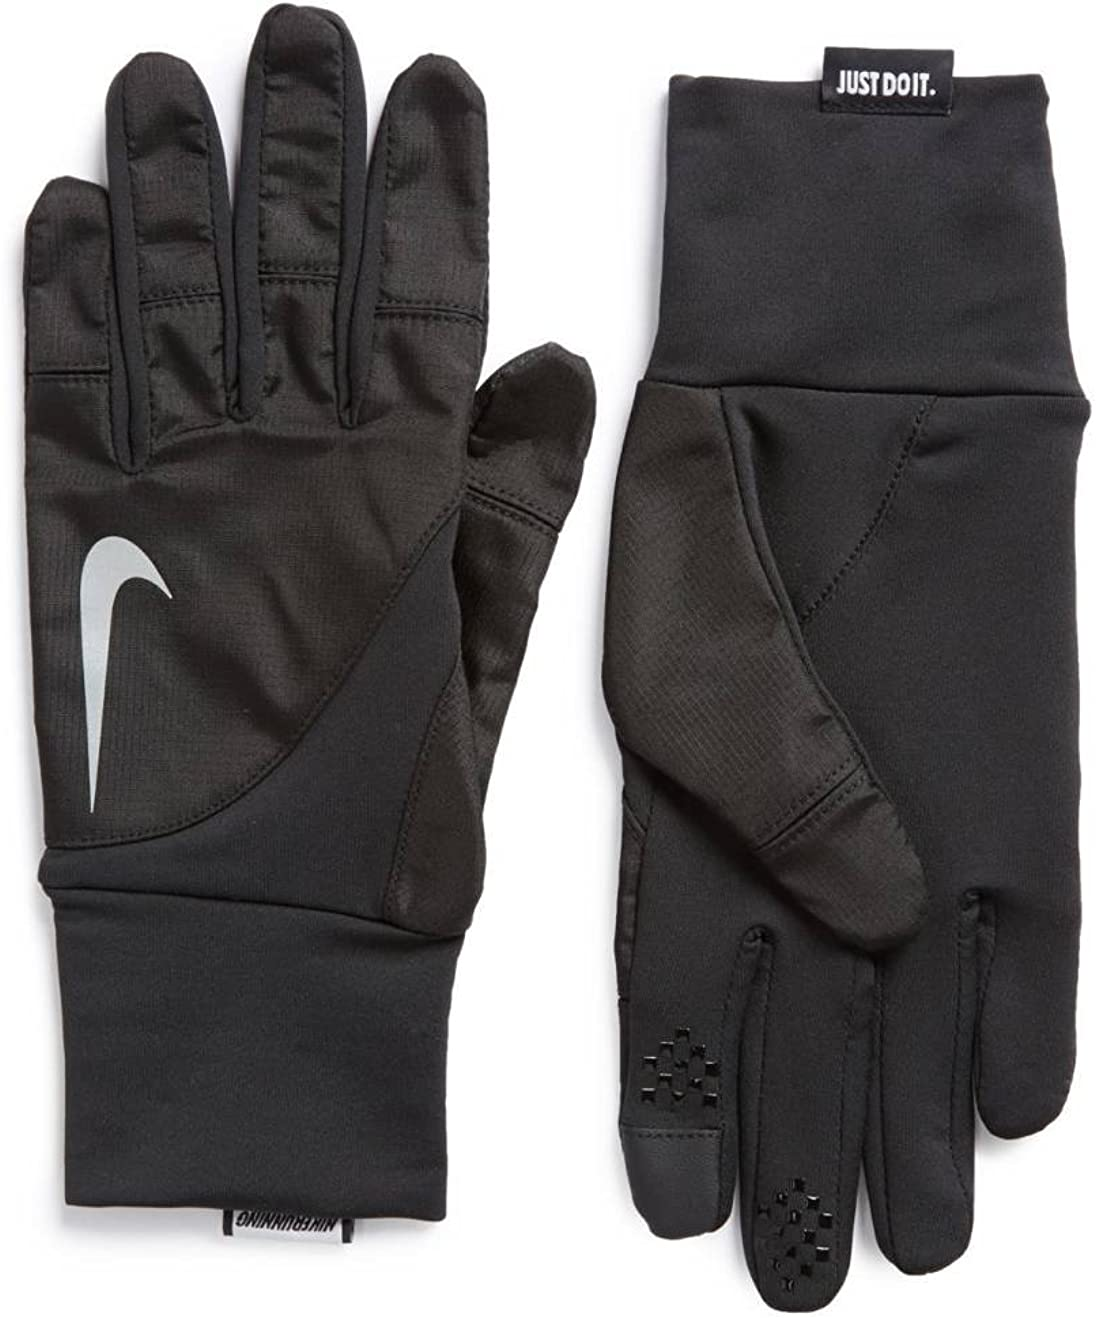 Award-winning store Nike Men's Storm Challenge the lowest price of Japan Fit Run 2.0 Gloves